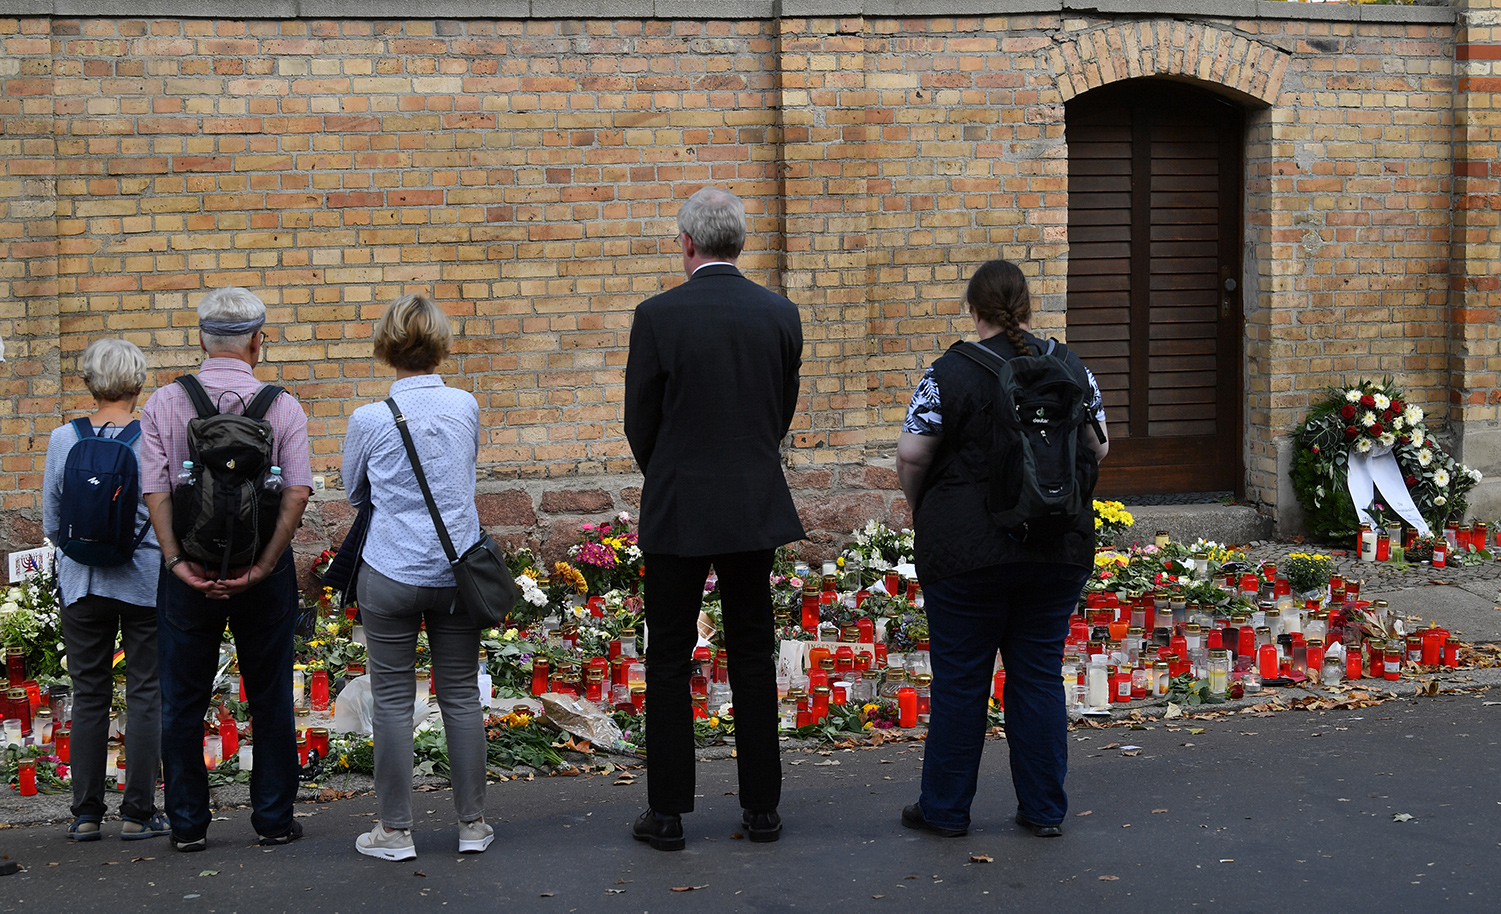 People standing in front of candles and flowers at the synagogue in Halle, Germany after a right-wing extremist attack on October 9, 2019. Photo by Hendrik Schmidt via Getty Images.